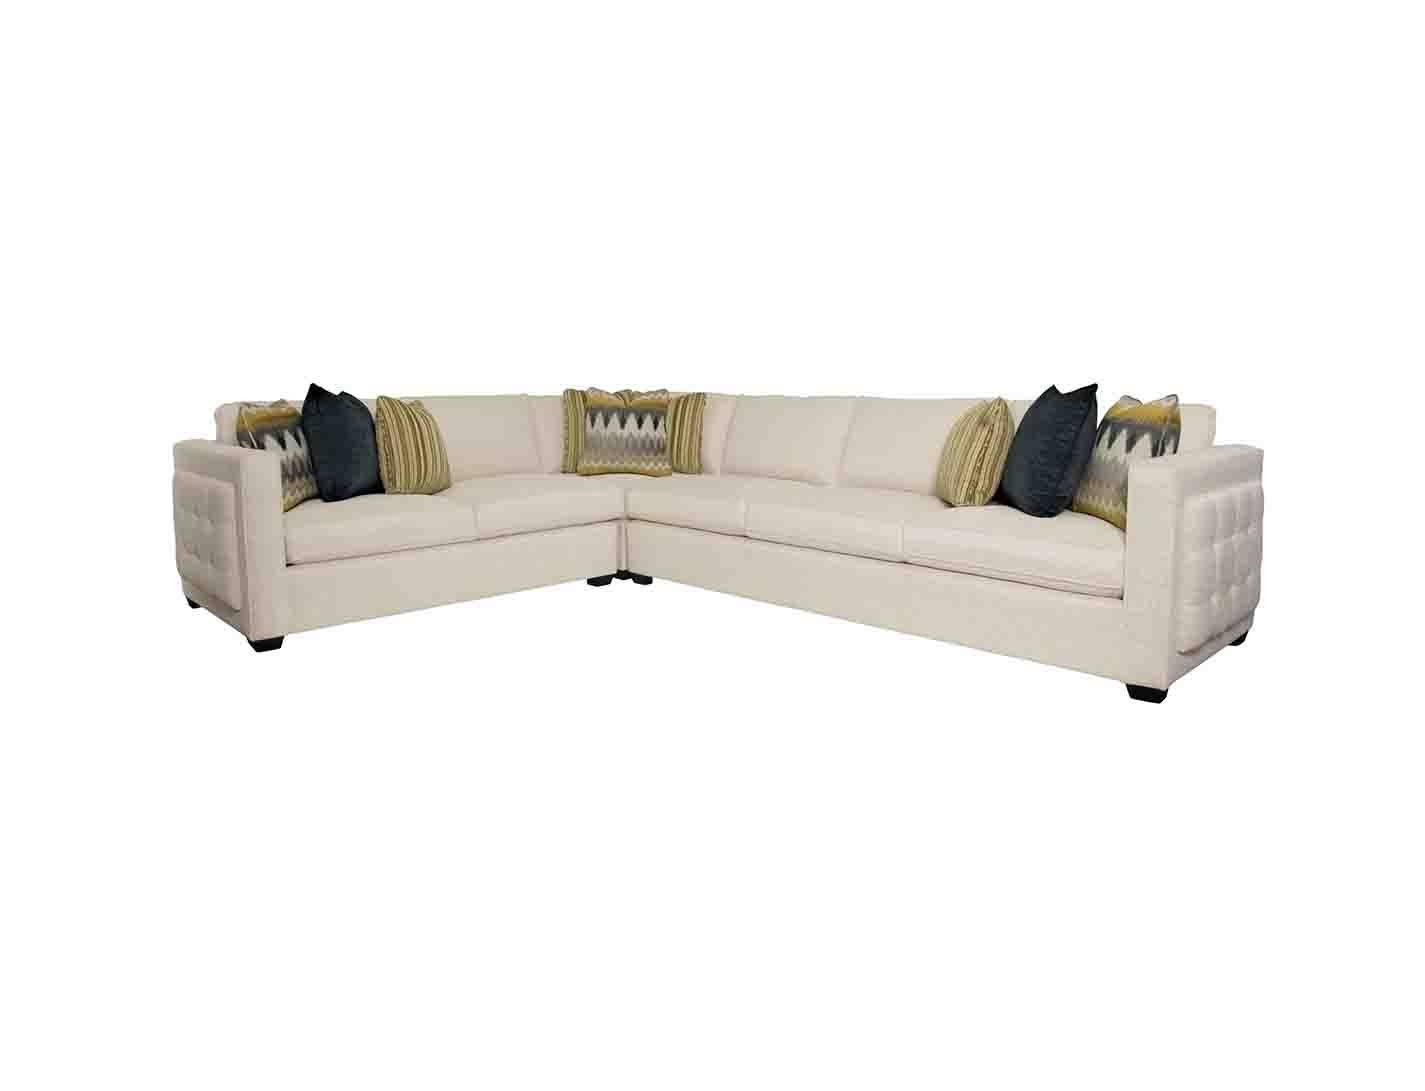 Bradley Sectional Sofa - Leather Sectional Sofa with Bradley Sectional Sofa (Image 11 of 30)